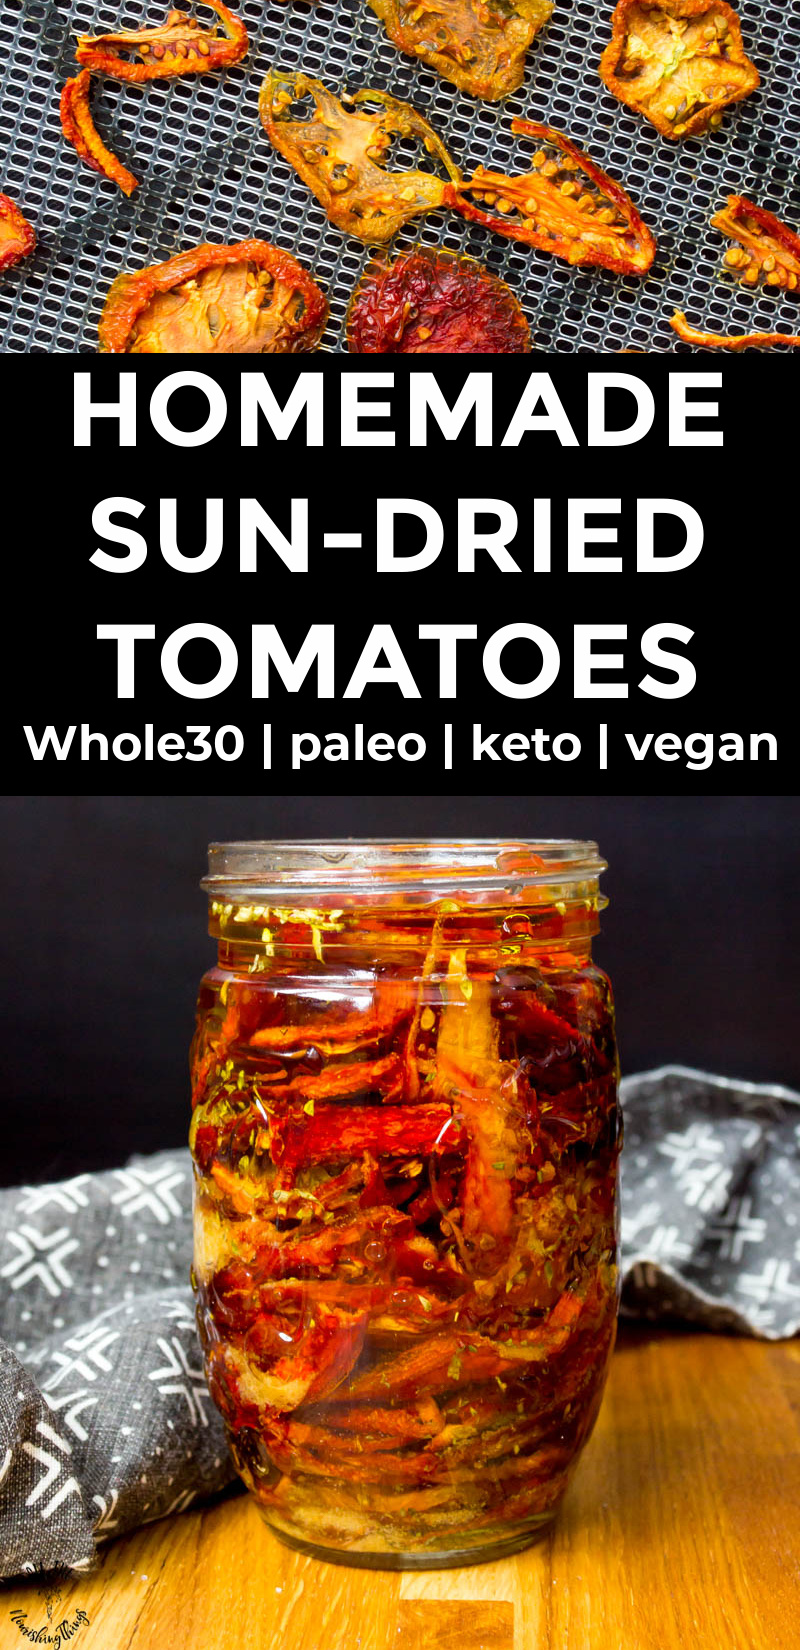 dried tomatoes on a dehydrator tray, white text, jar of sun-dried tomatoes packed in olive oil